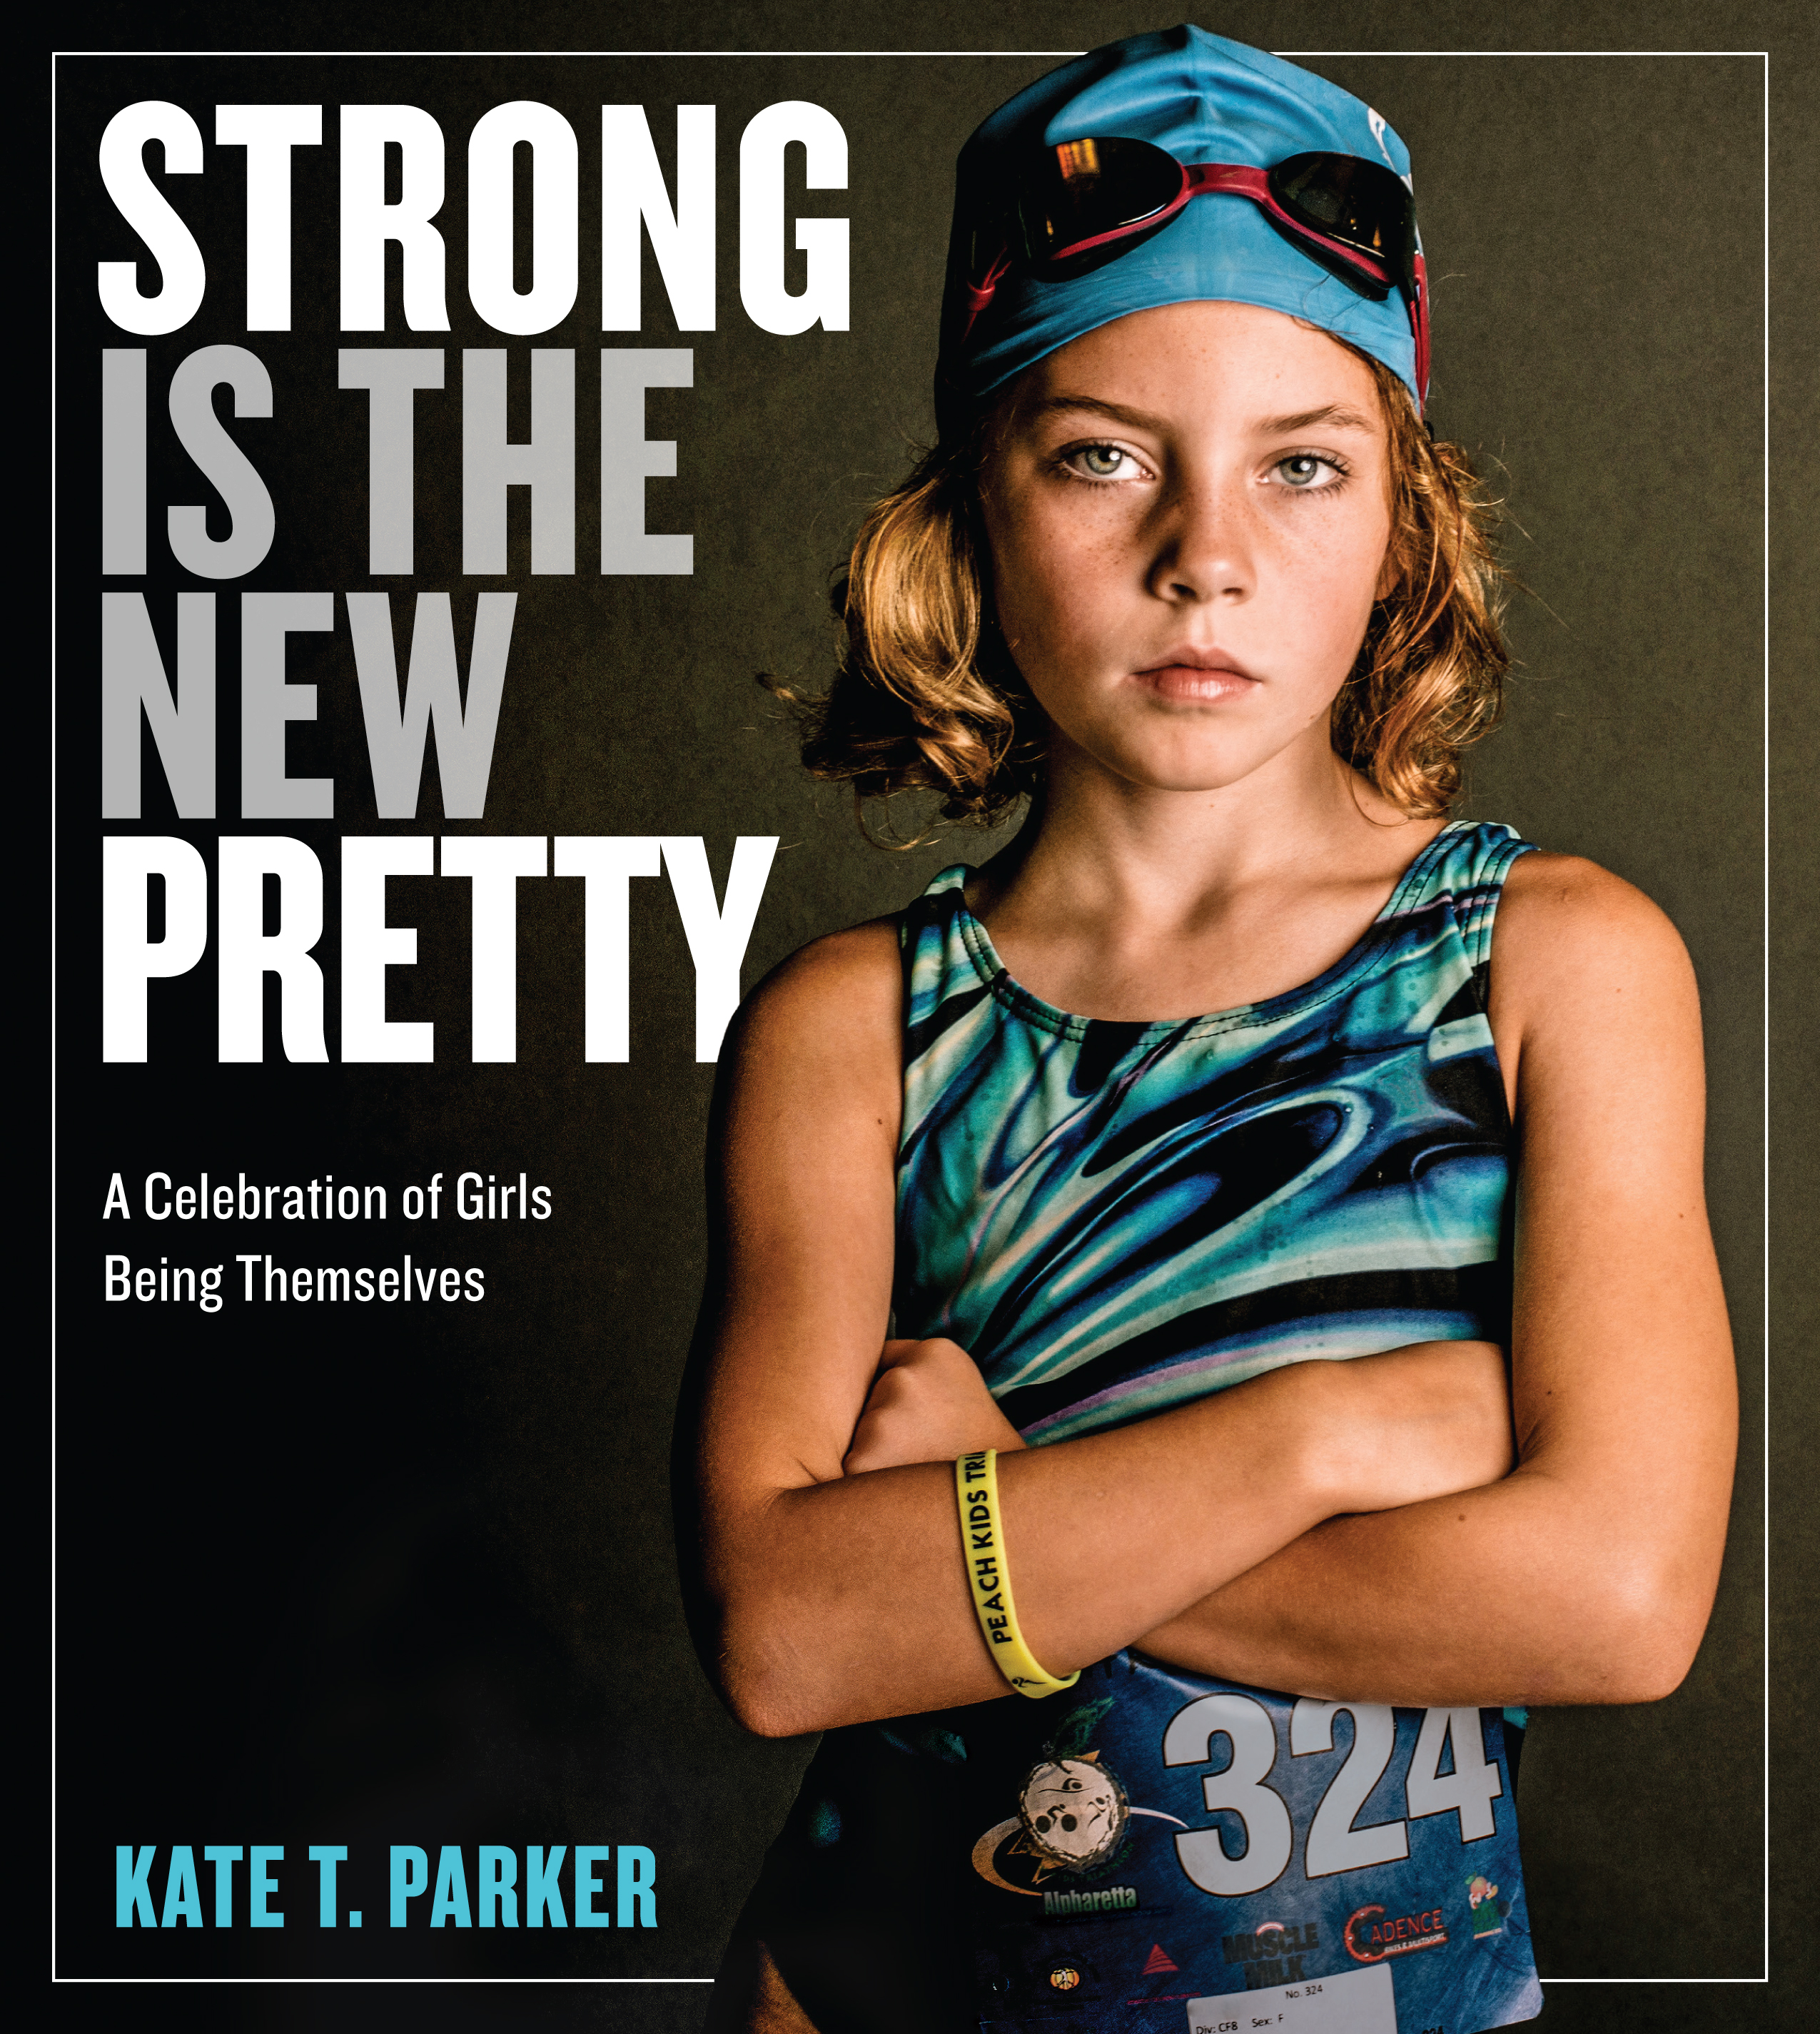 Book Launch: Strong is the New Pretty by Kate T. Parker